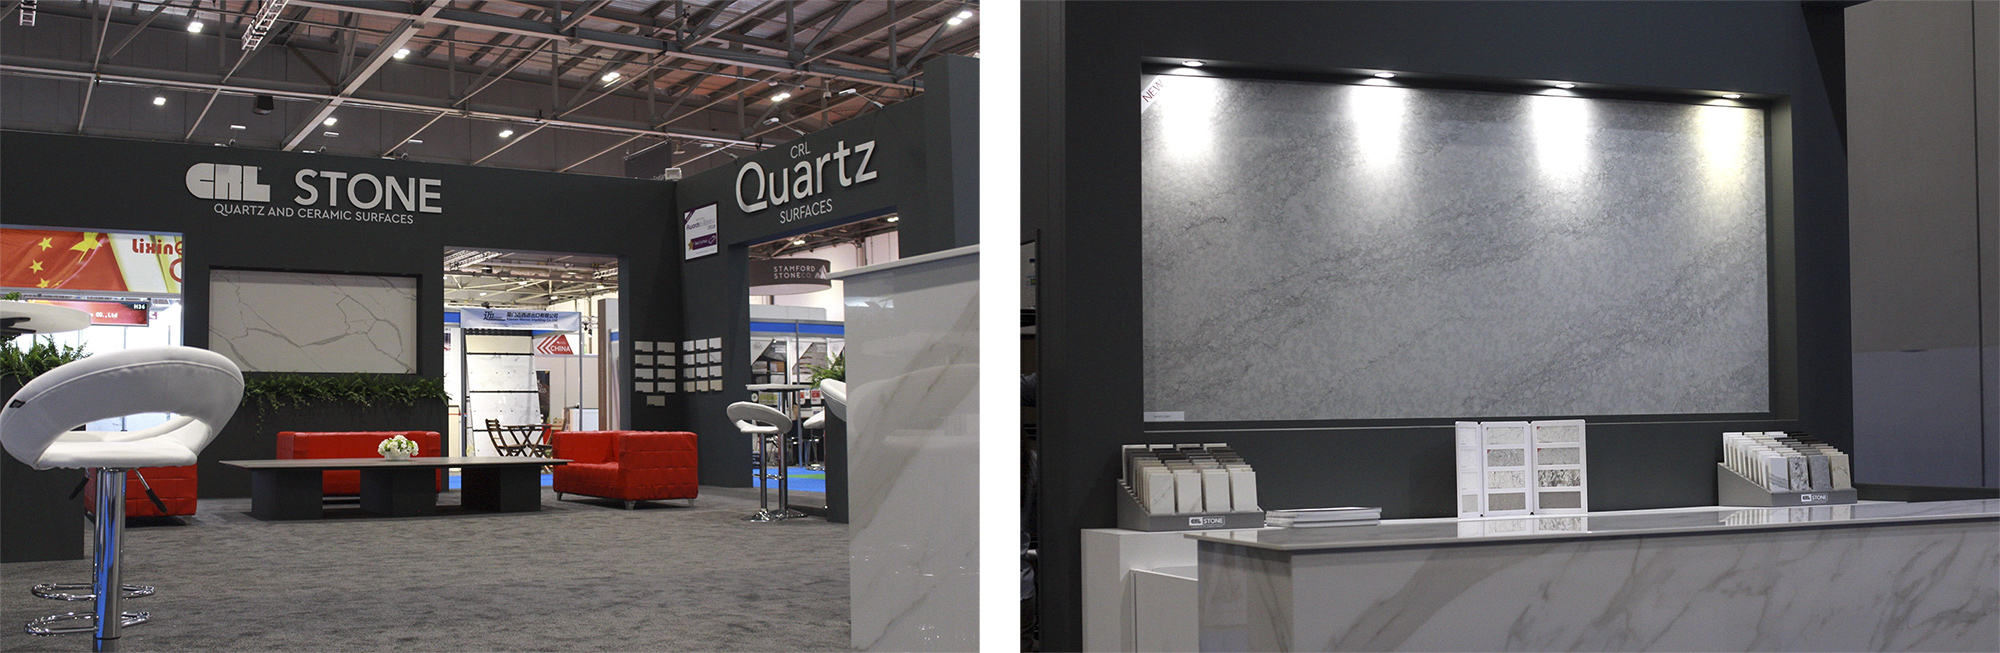 CRL Stone at The Natural Stone Show